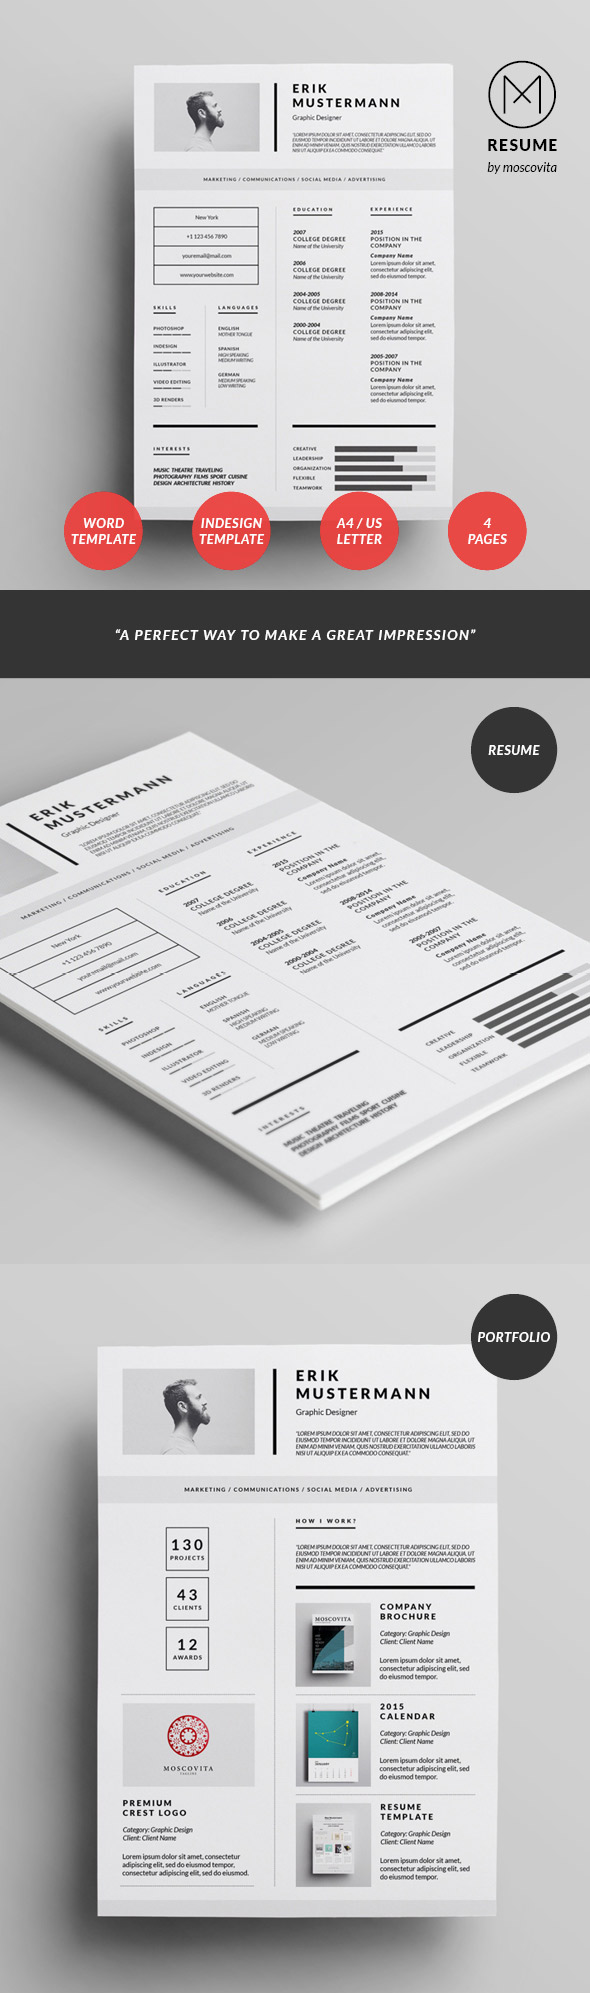 creative modern resume design - Creative Design Resume Templates